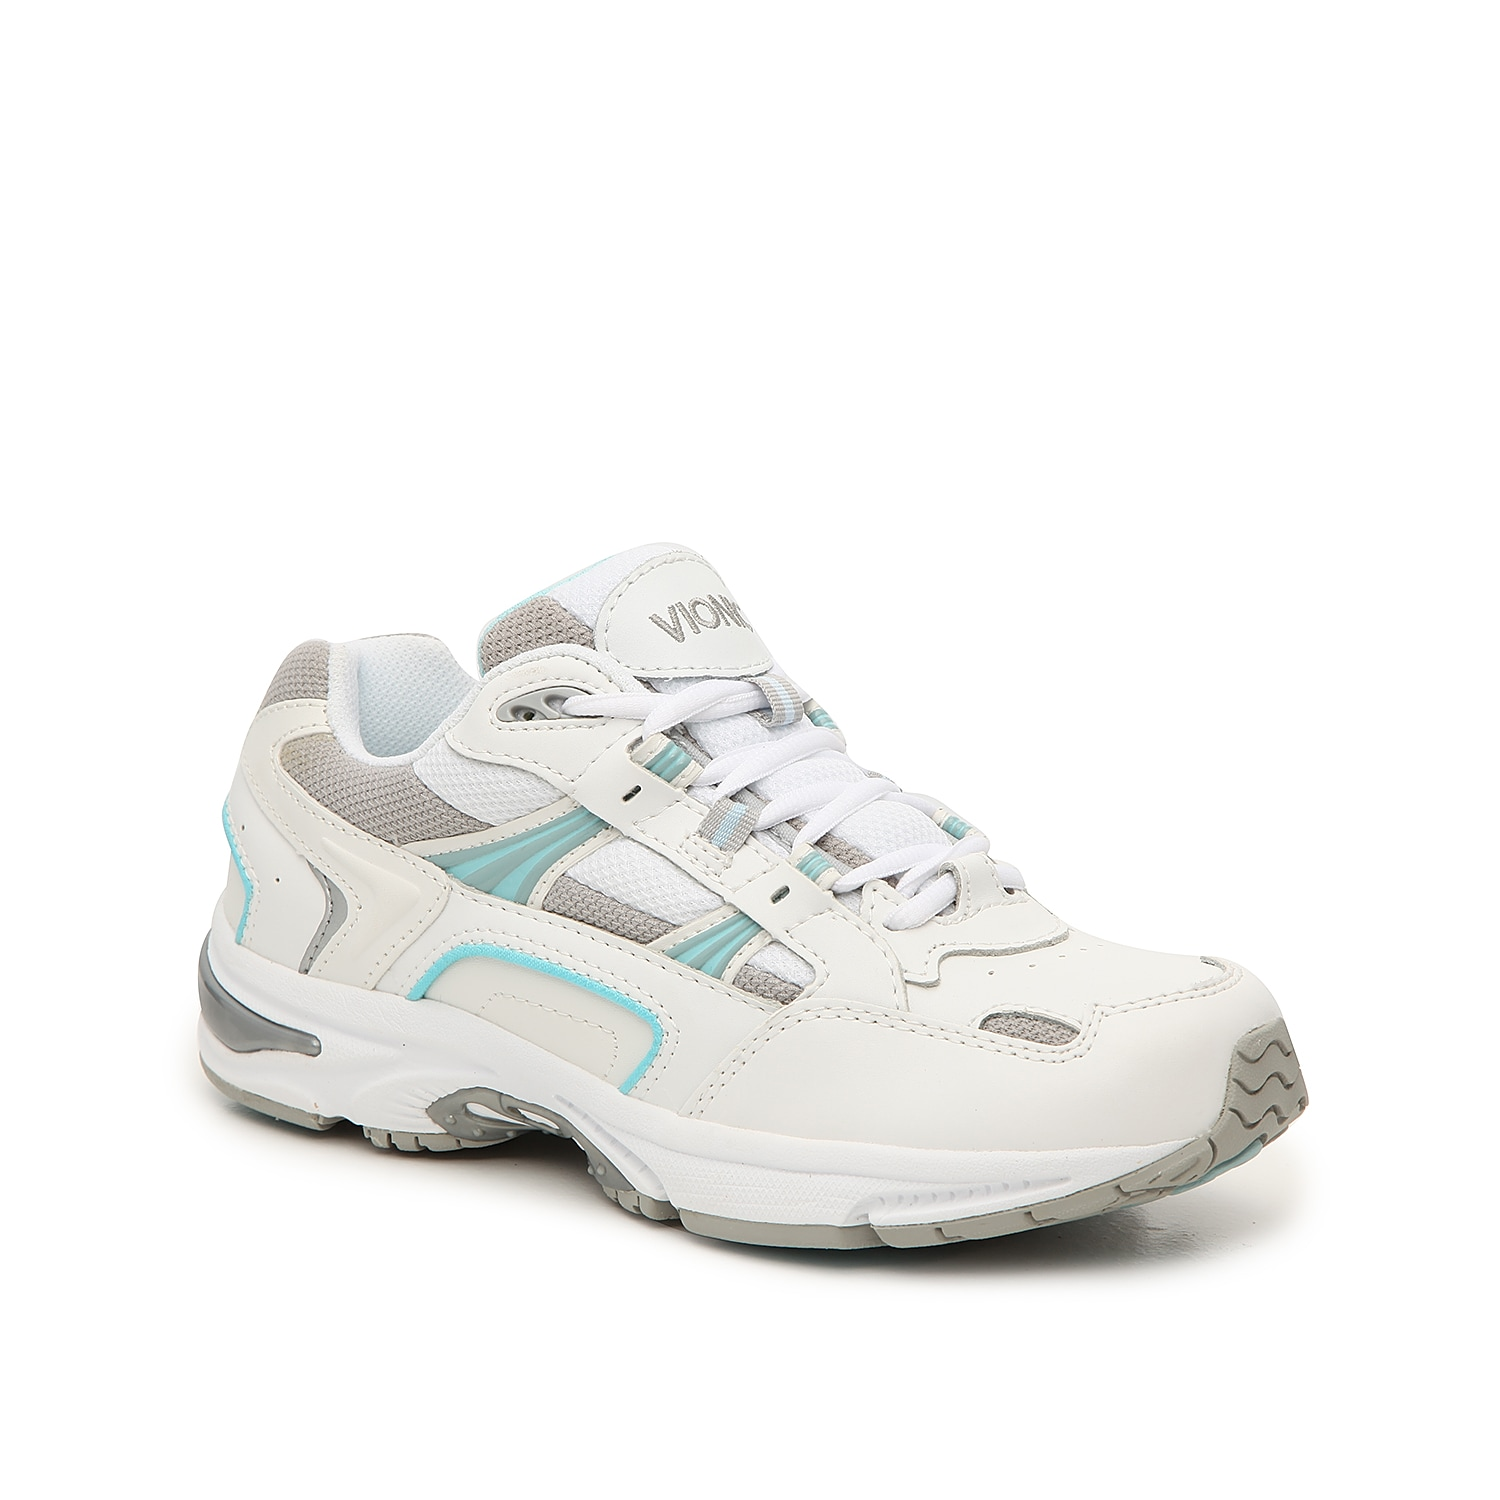 Every step you take will be comfortably efficient when you wear the Walker from Vionic. This women\\\'s walking shoe features a durable leather design and is backed by plenty of cushioning and padding for added stability.